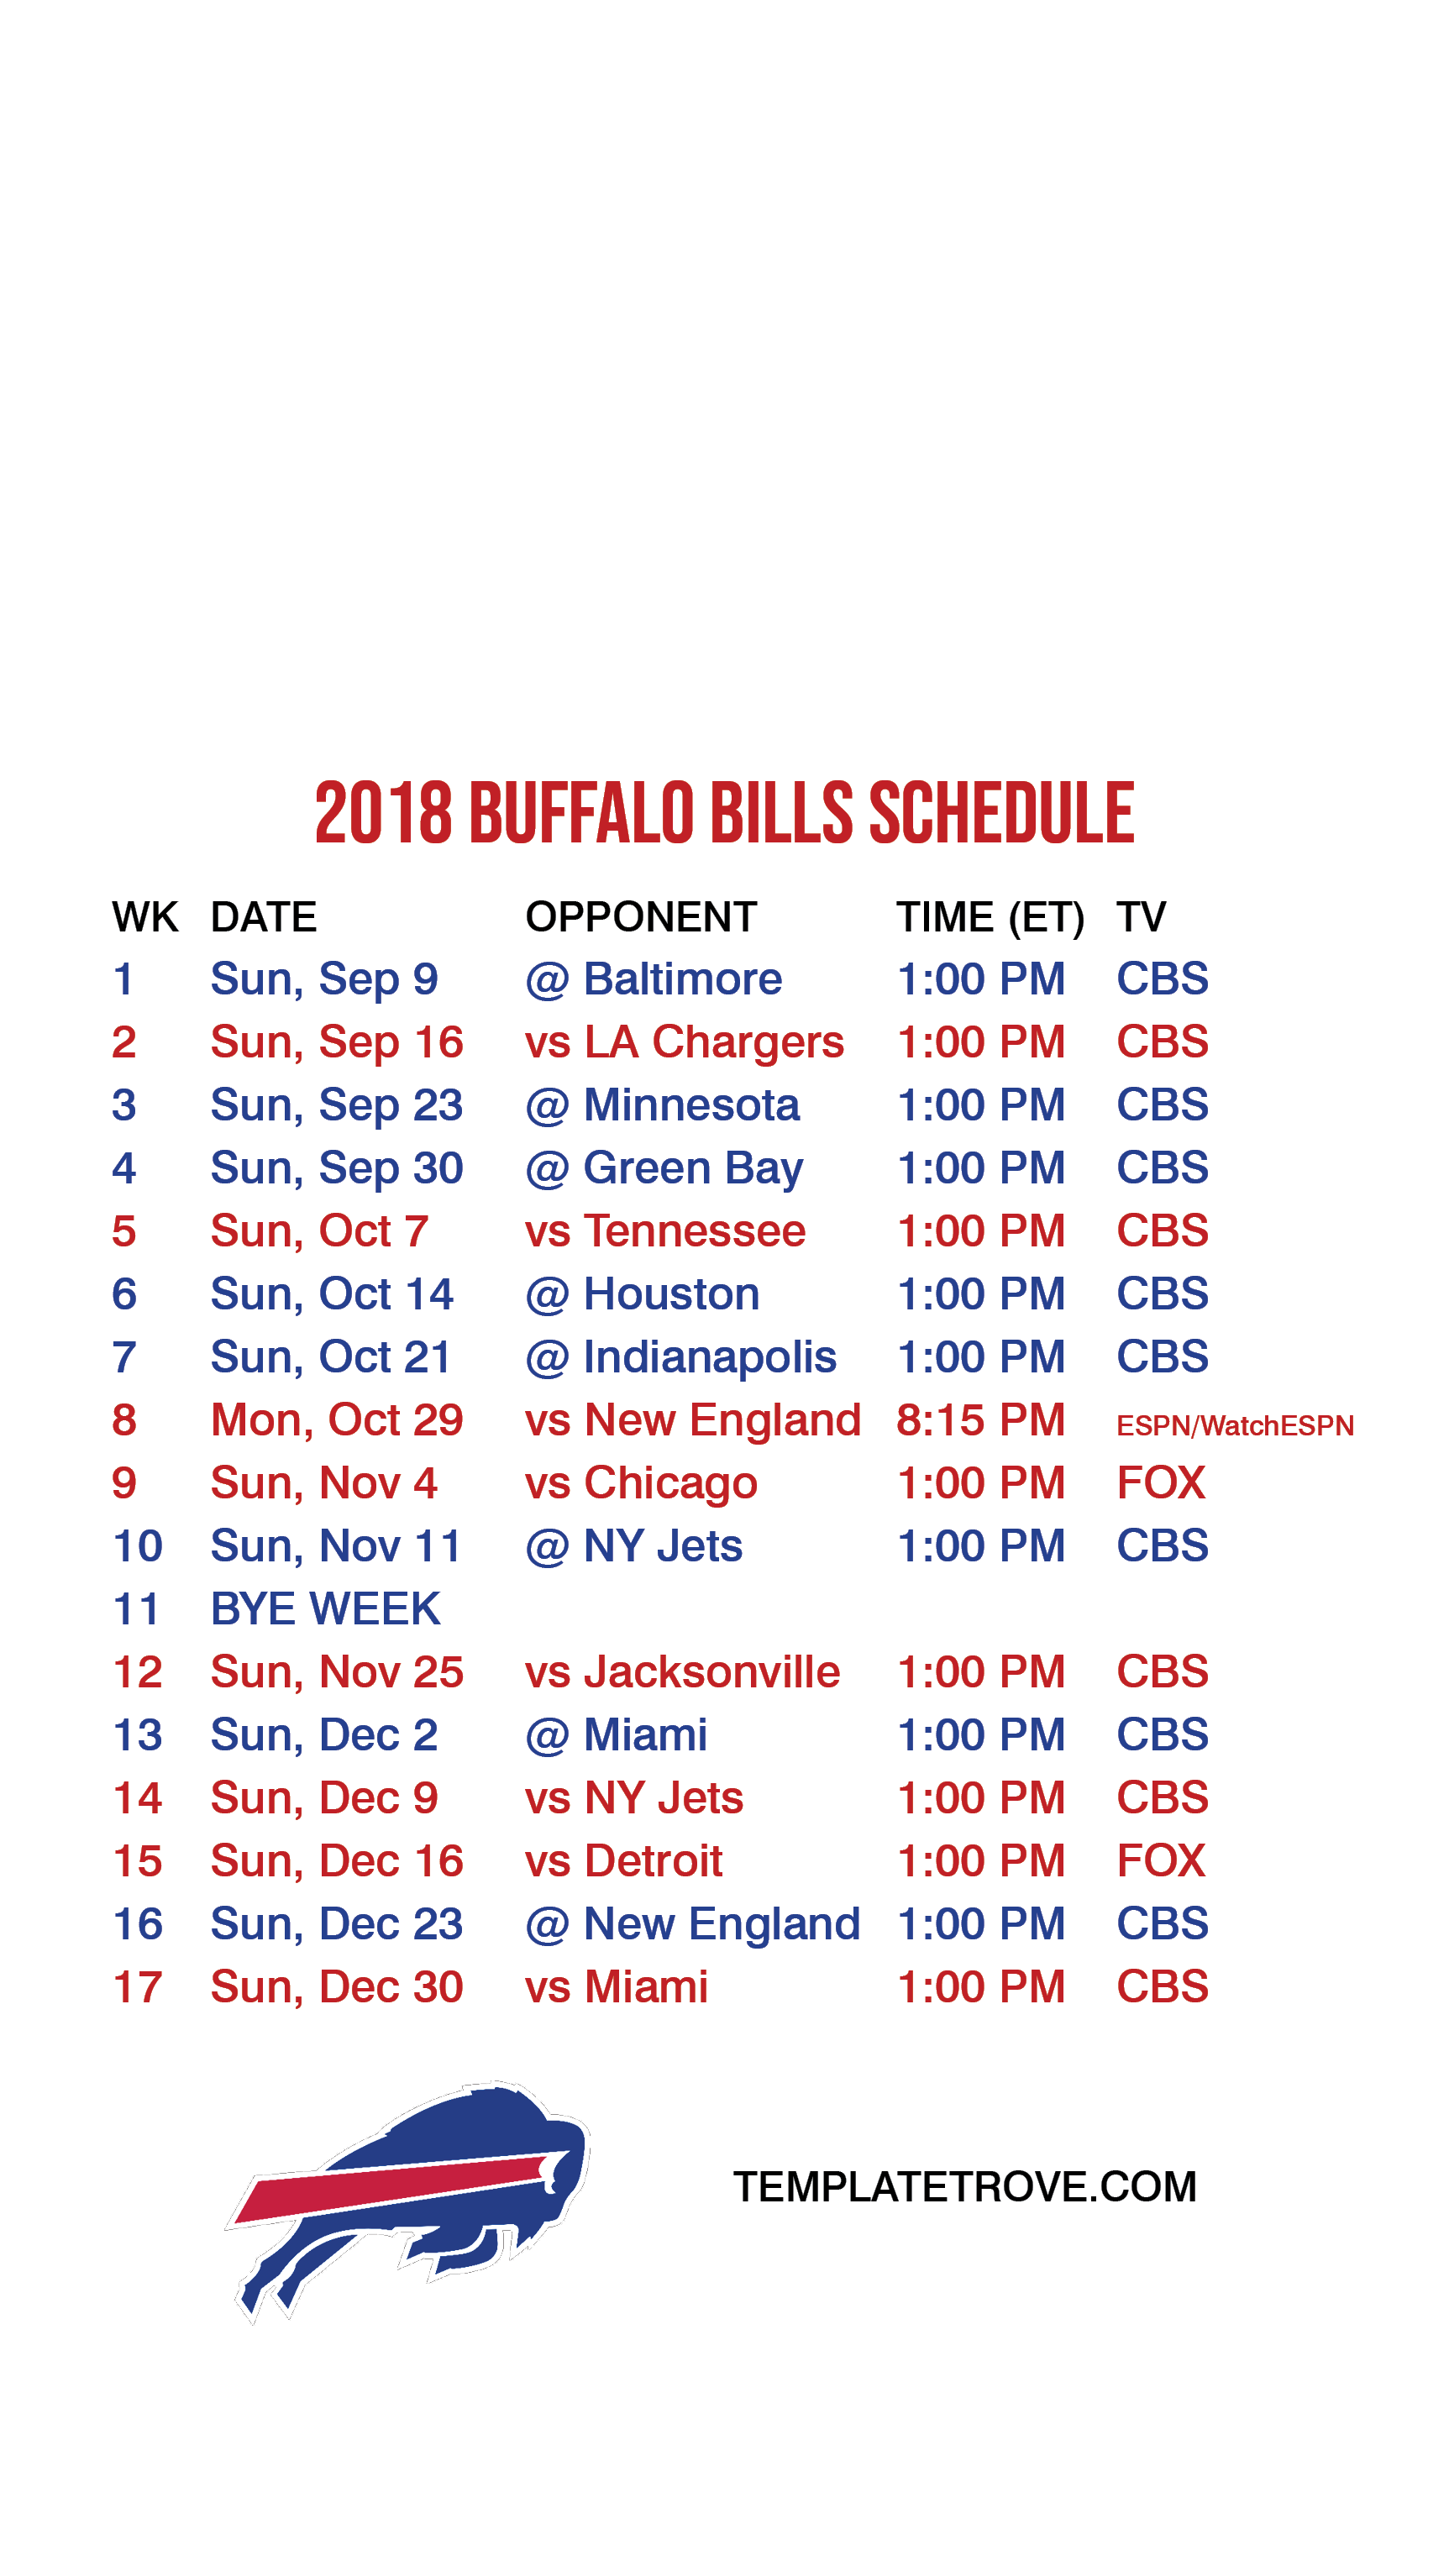 image regarding Buffalo Bills Printable Schedule named 2018-2019 Buffalo Expenses Lock Display screen Timetable for apple iphone 6-7